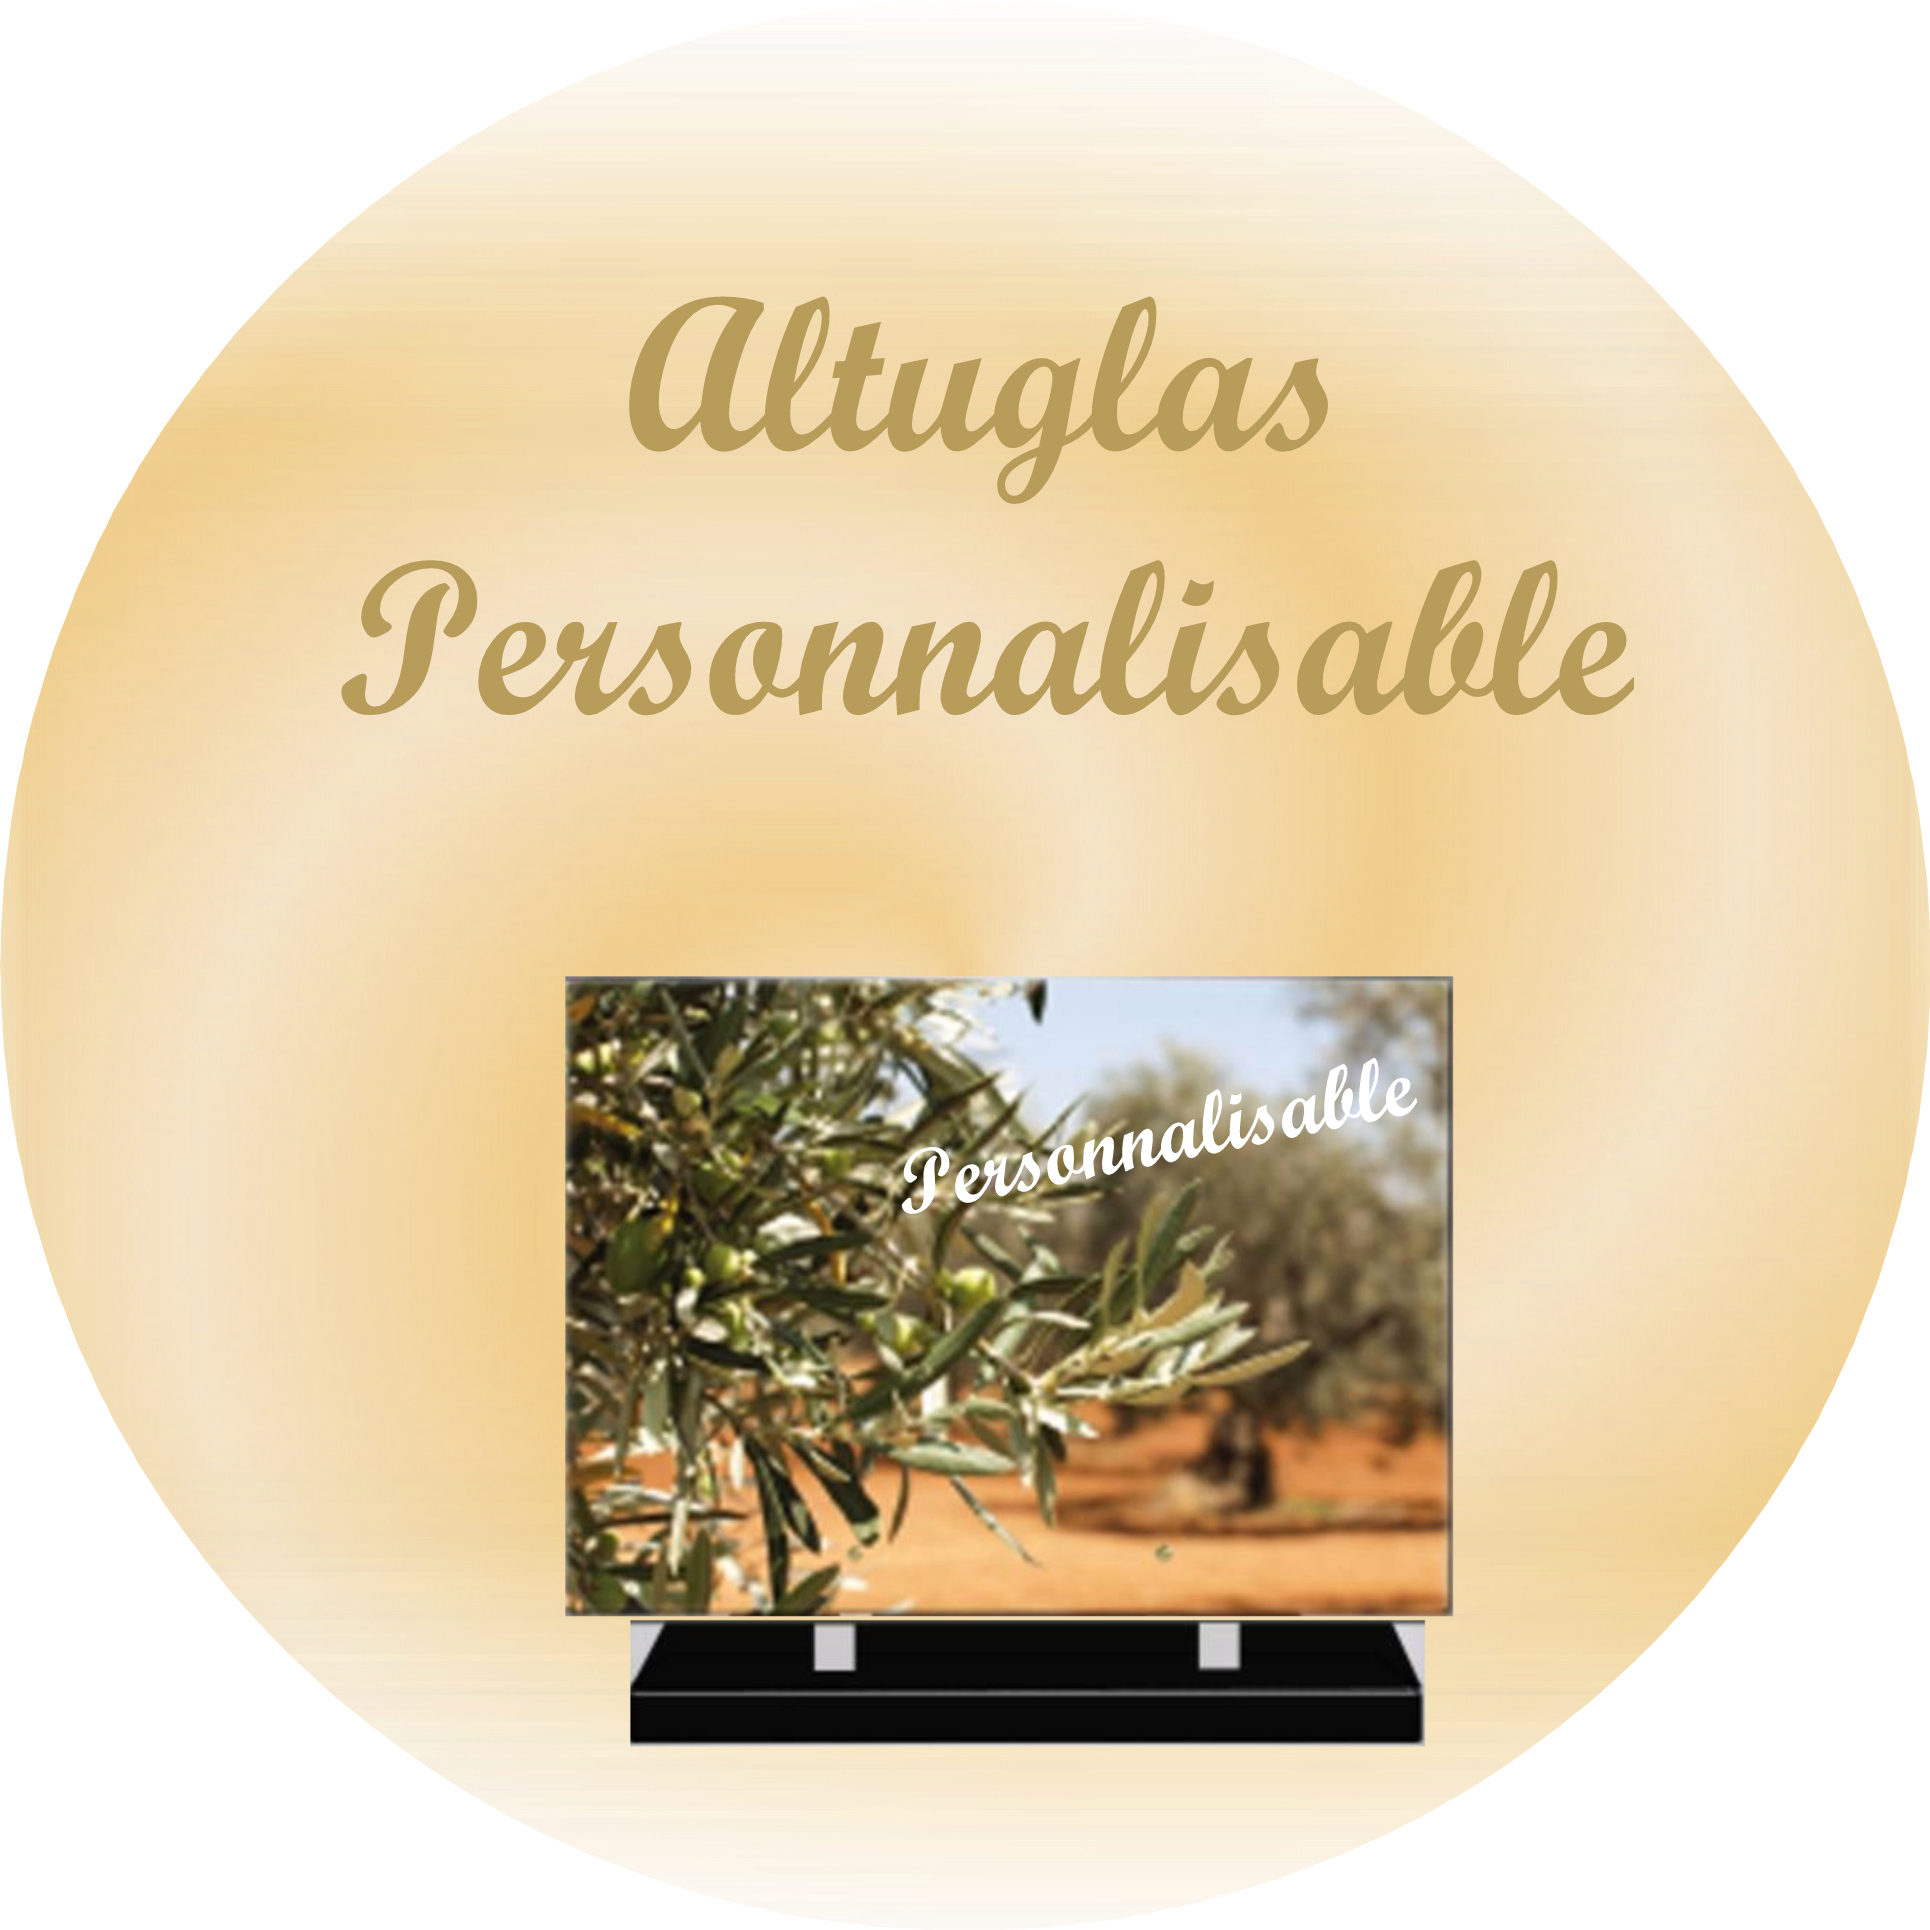 PLAQUES FUNERAIRES MODERNES PERSONNALISABLES RECTANGLE AMBRINES